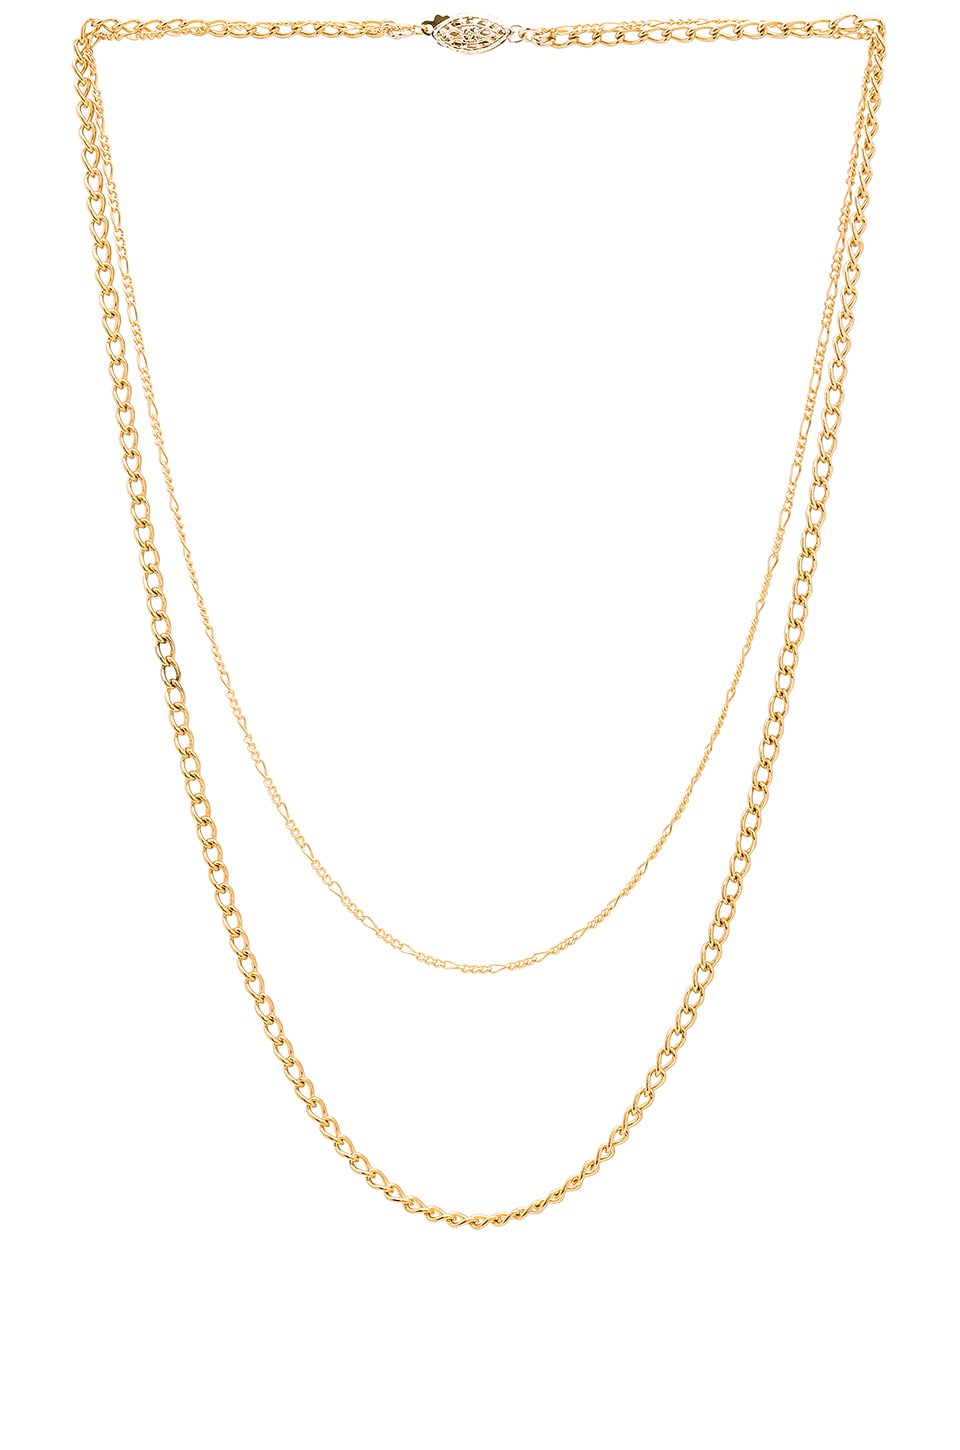 PARADIGM BROOKLYN DOUBLE CHAIN NECKLACE